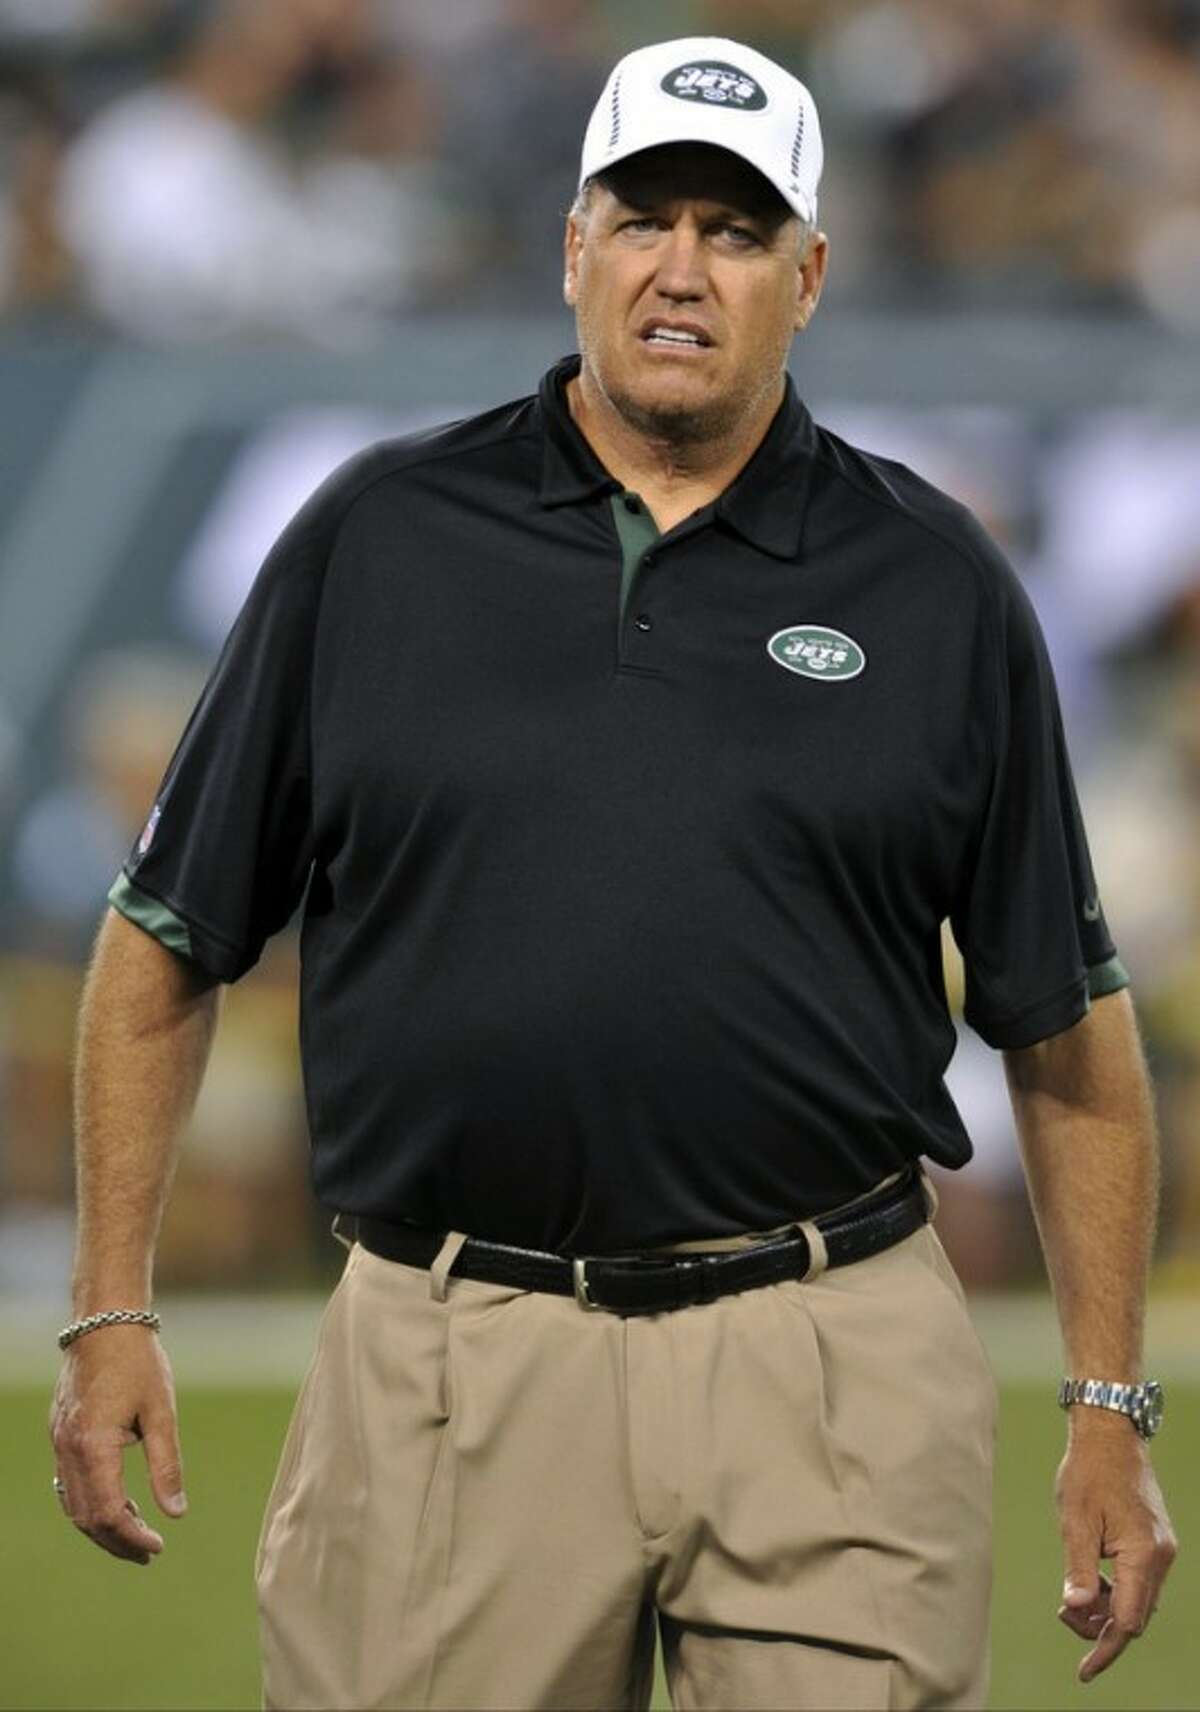 FILE - In this Aug. 26, 2012, file photo, New York Jets head coach Rex Ryan walks on the field before a preseason NFL football game against the Carolina Panthers in East Rutherford, N.J. The Jets' defense, featuring an improved secondary, is shaping up to be one of the toughest in the league but is being overshadowed by a quarterback controversy and the offense's inability to get into the end zone. The Jets are scheduled to begin their regular season on Sept. 9 at home against the Buffalo Bills. (AP Photo/Bill Kostroun, File)